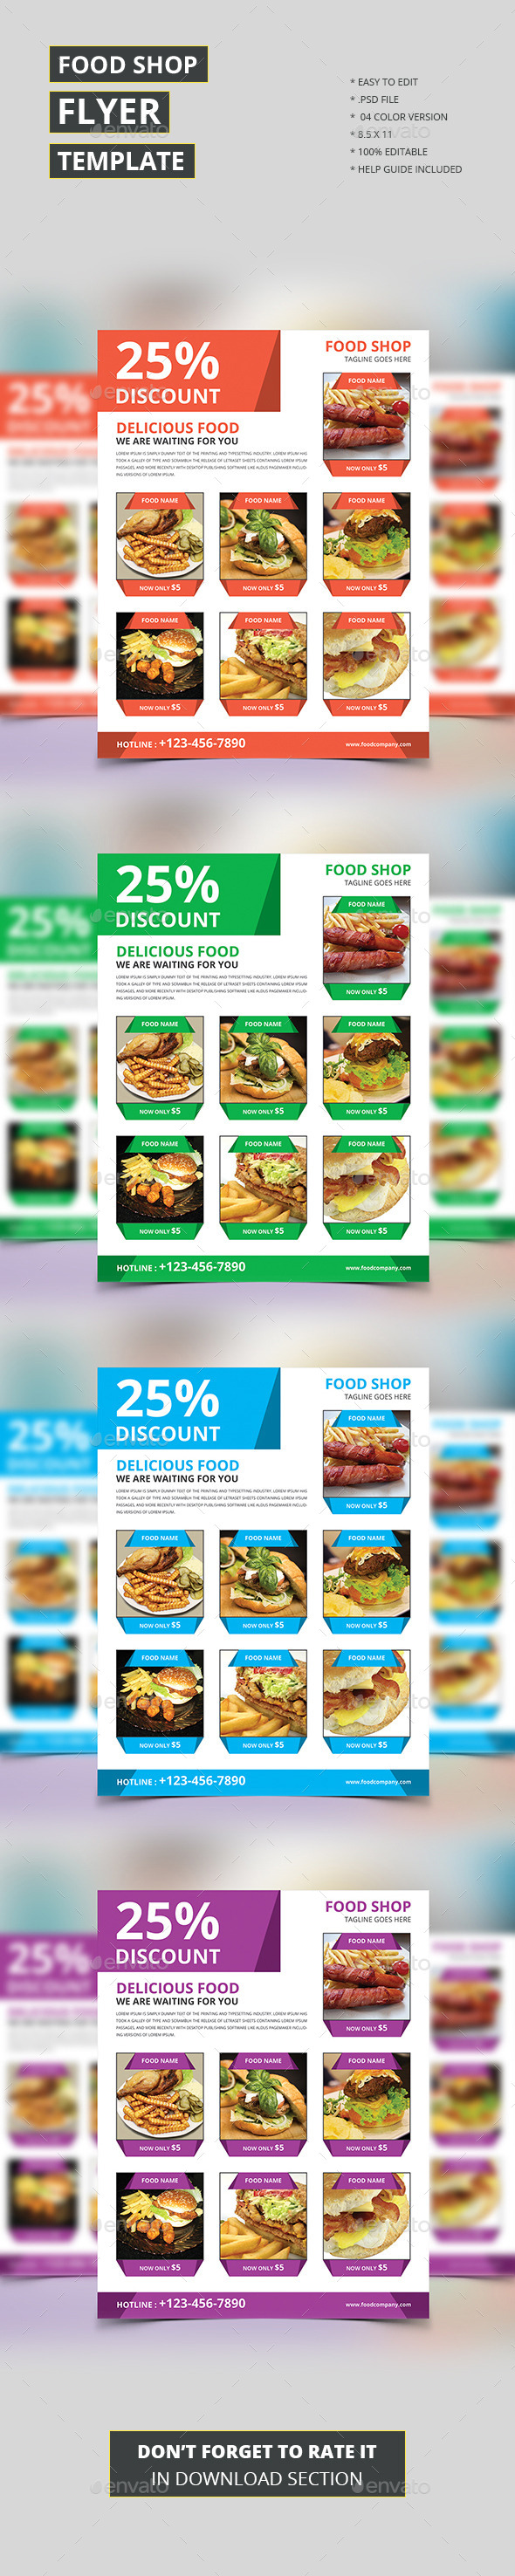 Food Shop Flyer Template - Restaurant Flyers